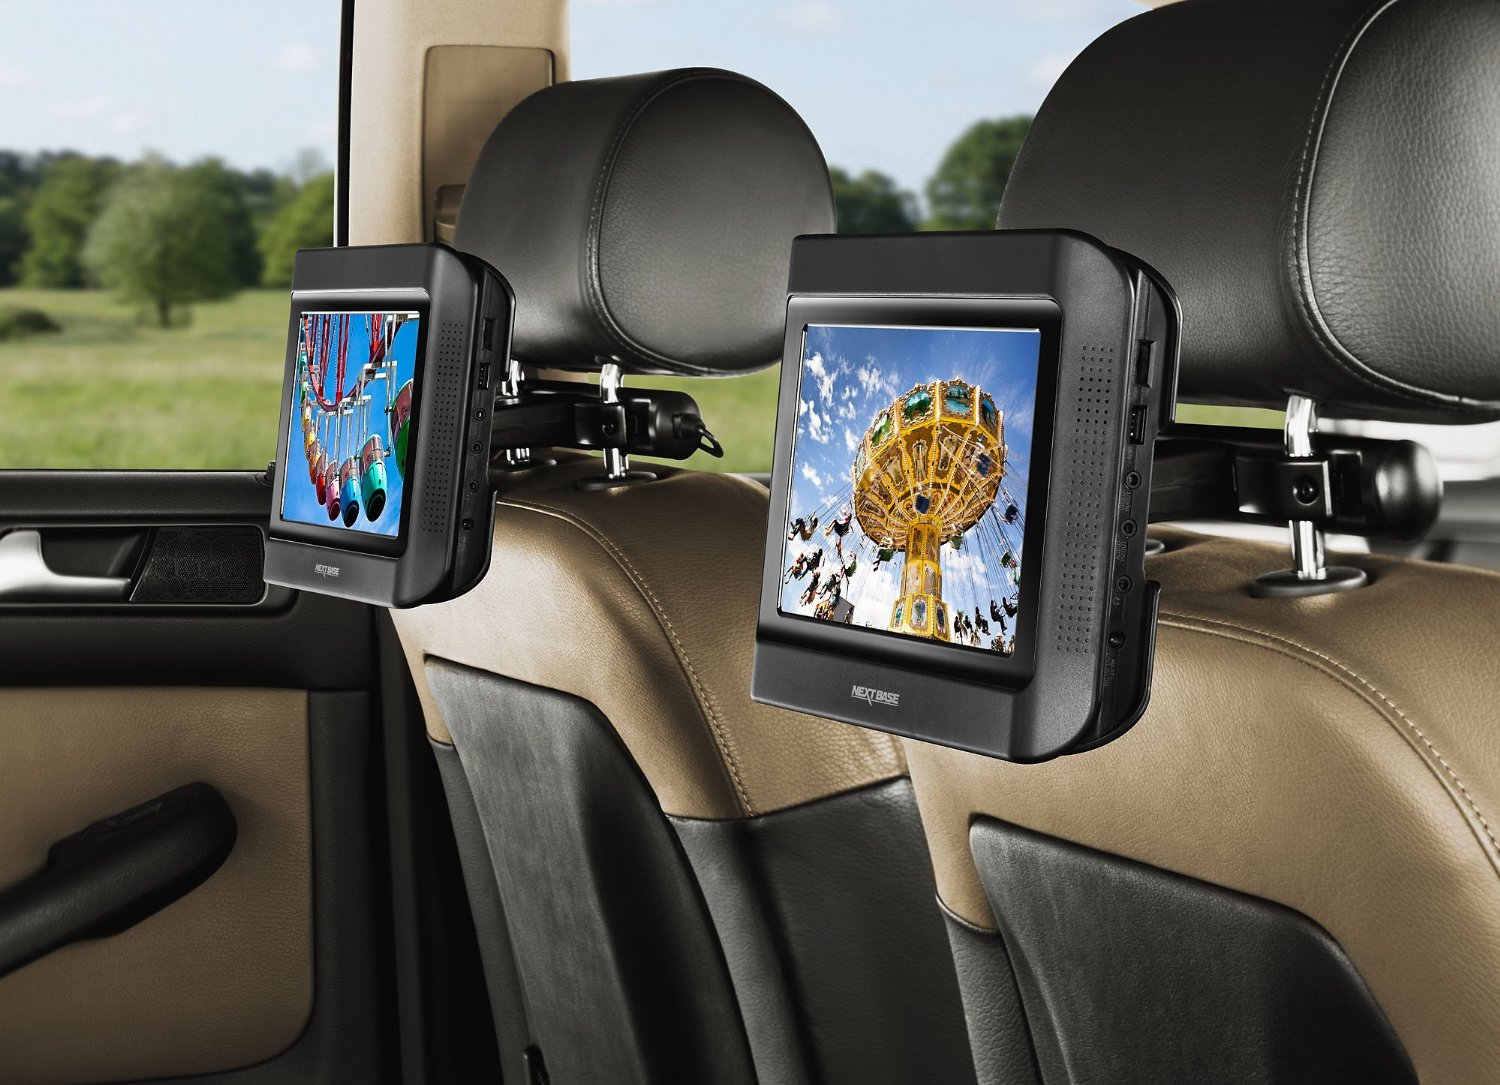 lecteur dvd de voiture ou tablette que choisir. Black Bedroom Furniture Sets. Home Design Ideas